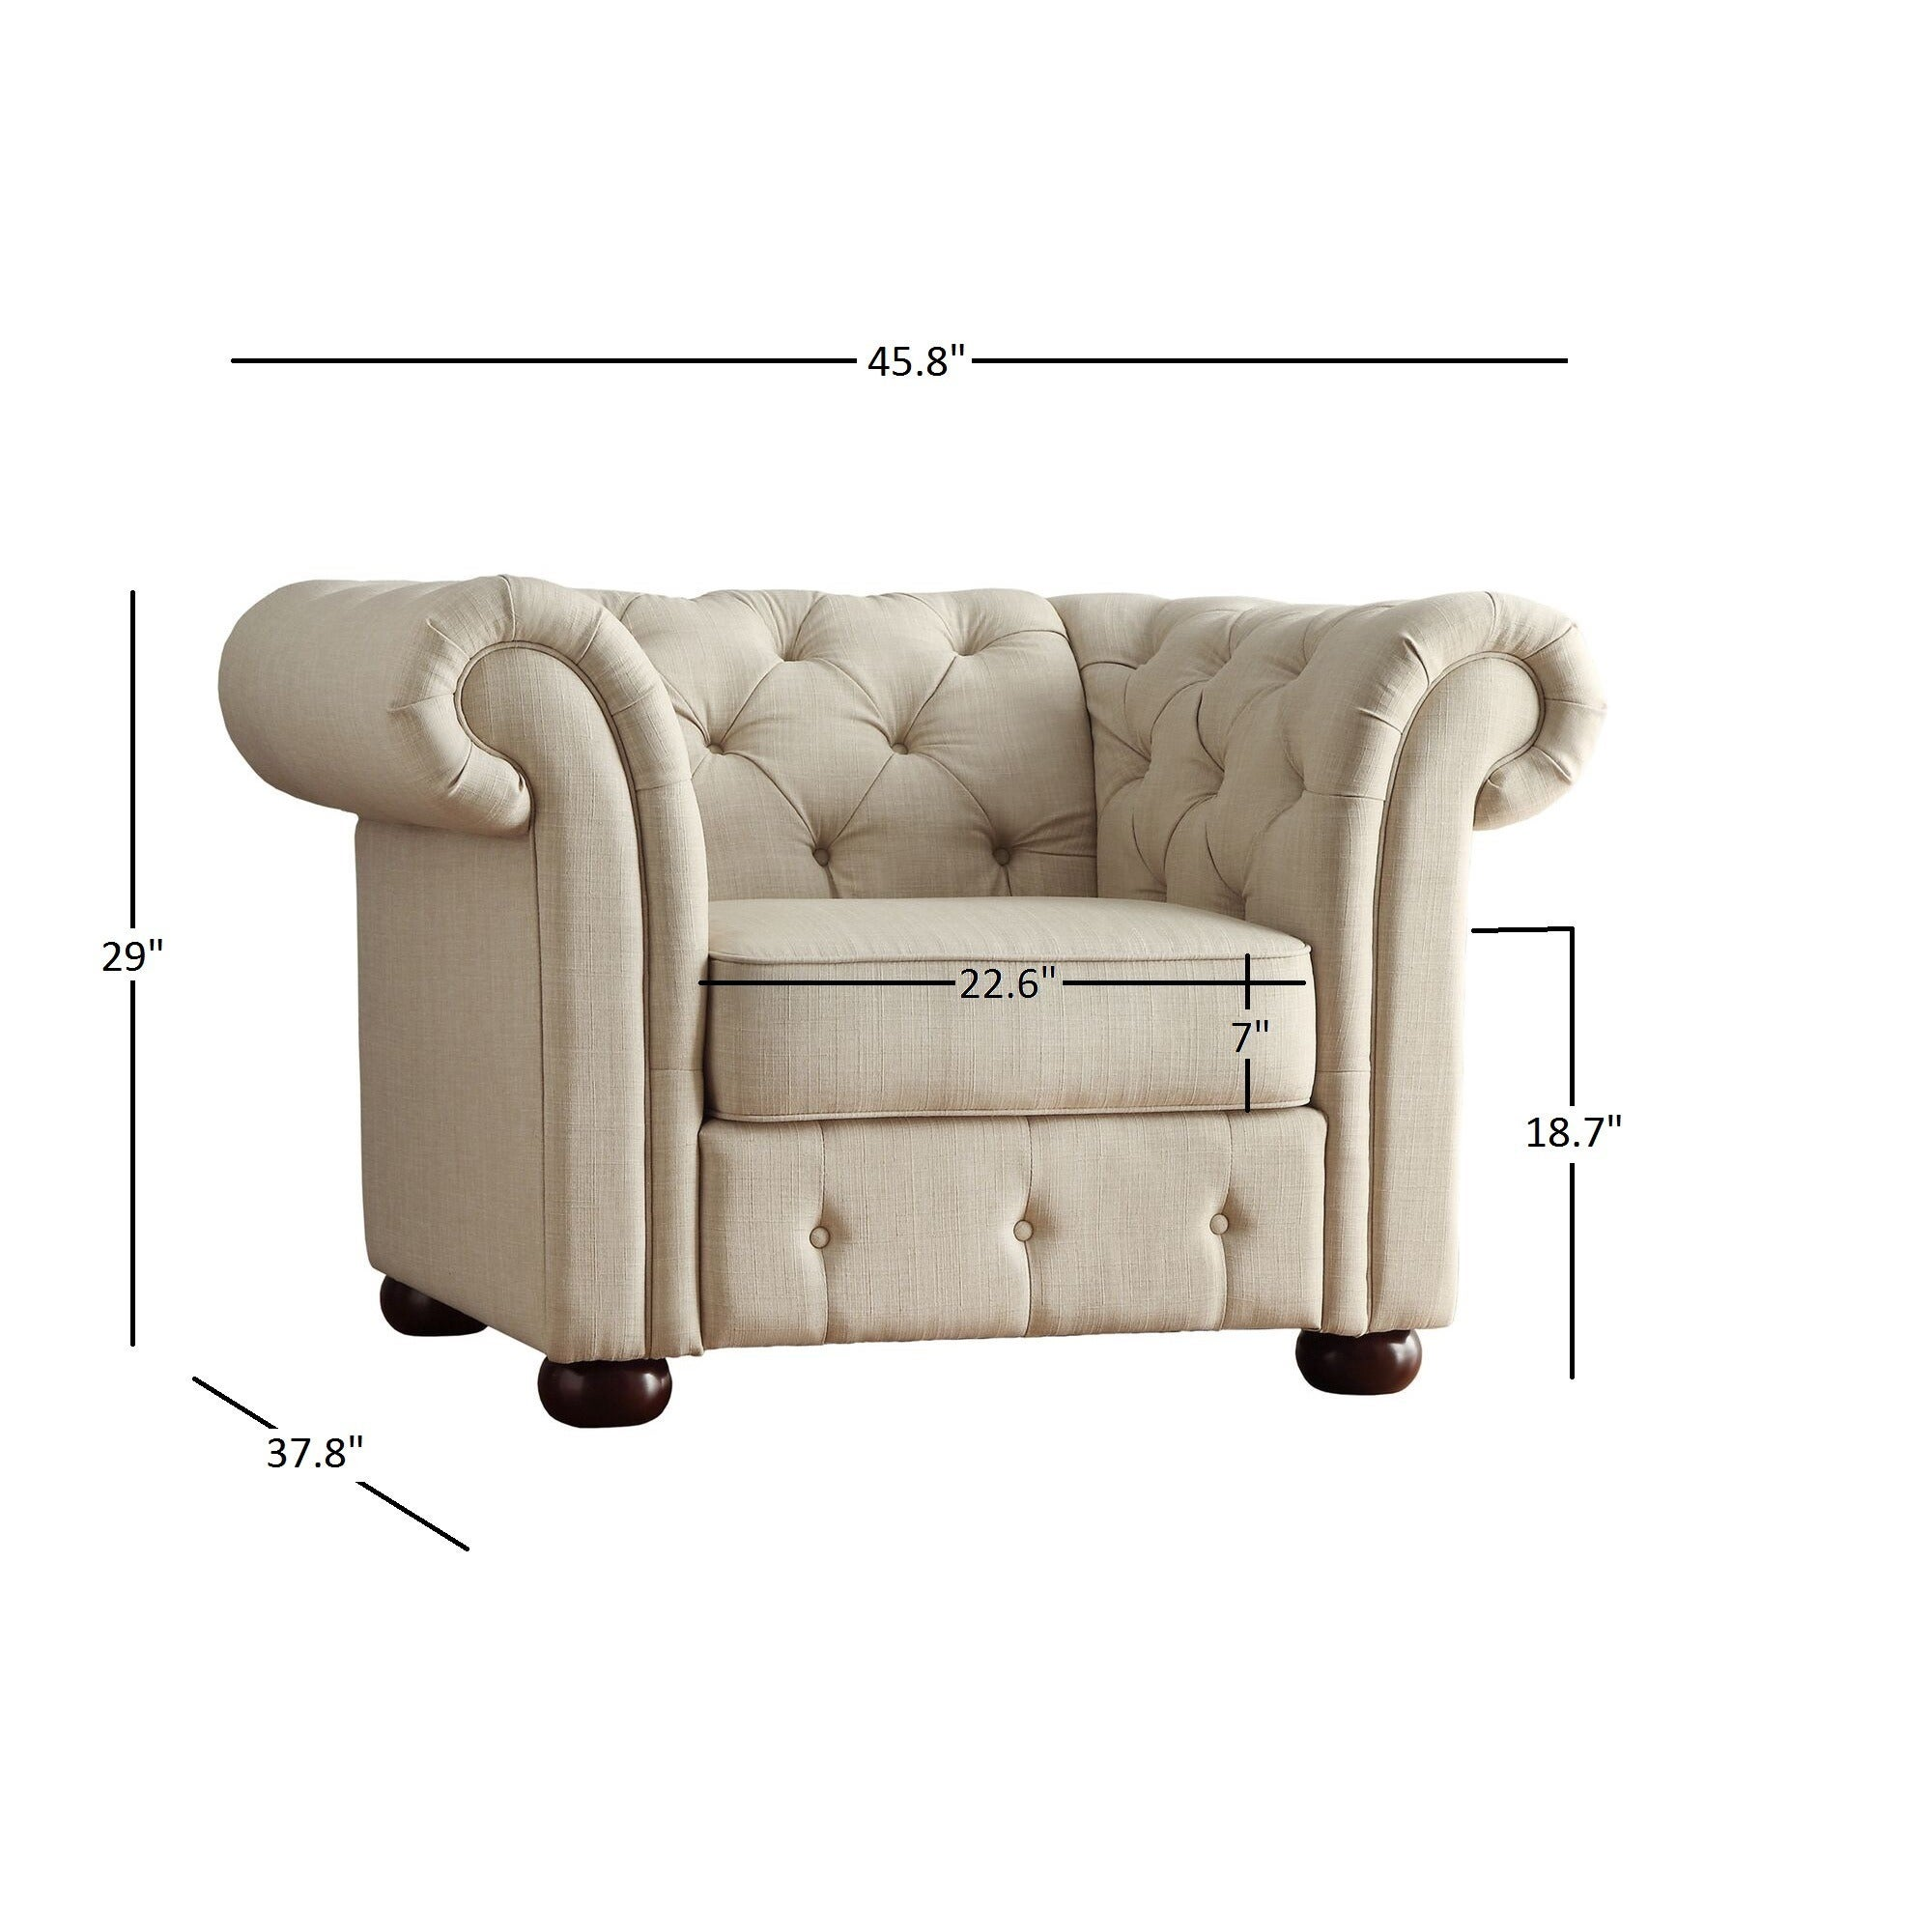 Knightsbridge Beige Linen Tufted Scroll Arm Chesterfield Chair By Inspire